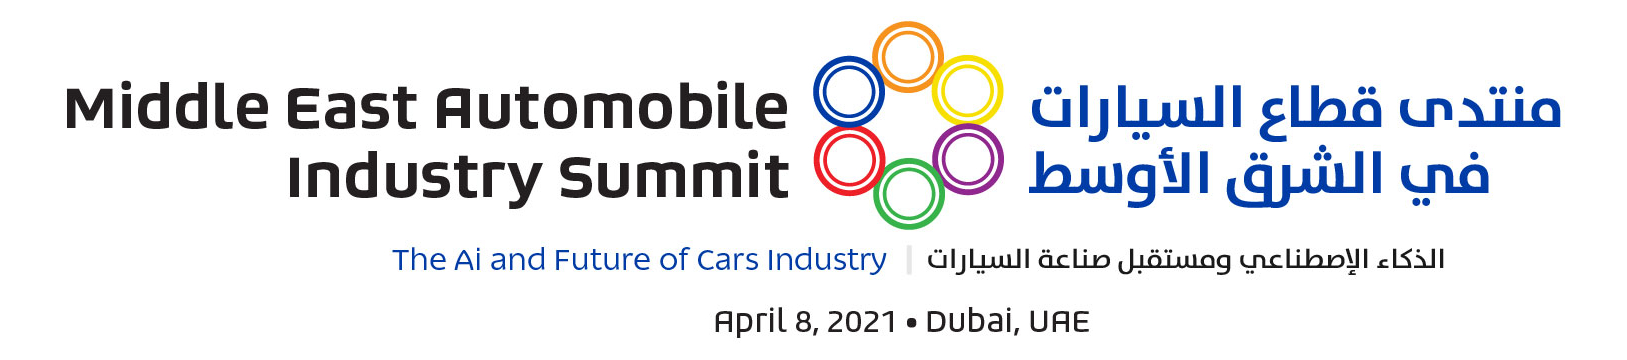 Middle East Automobile Industry Summit